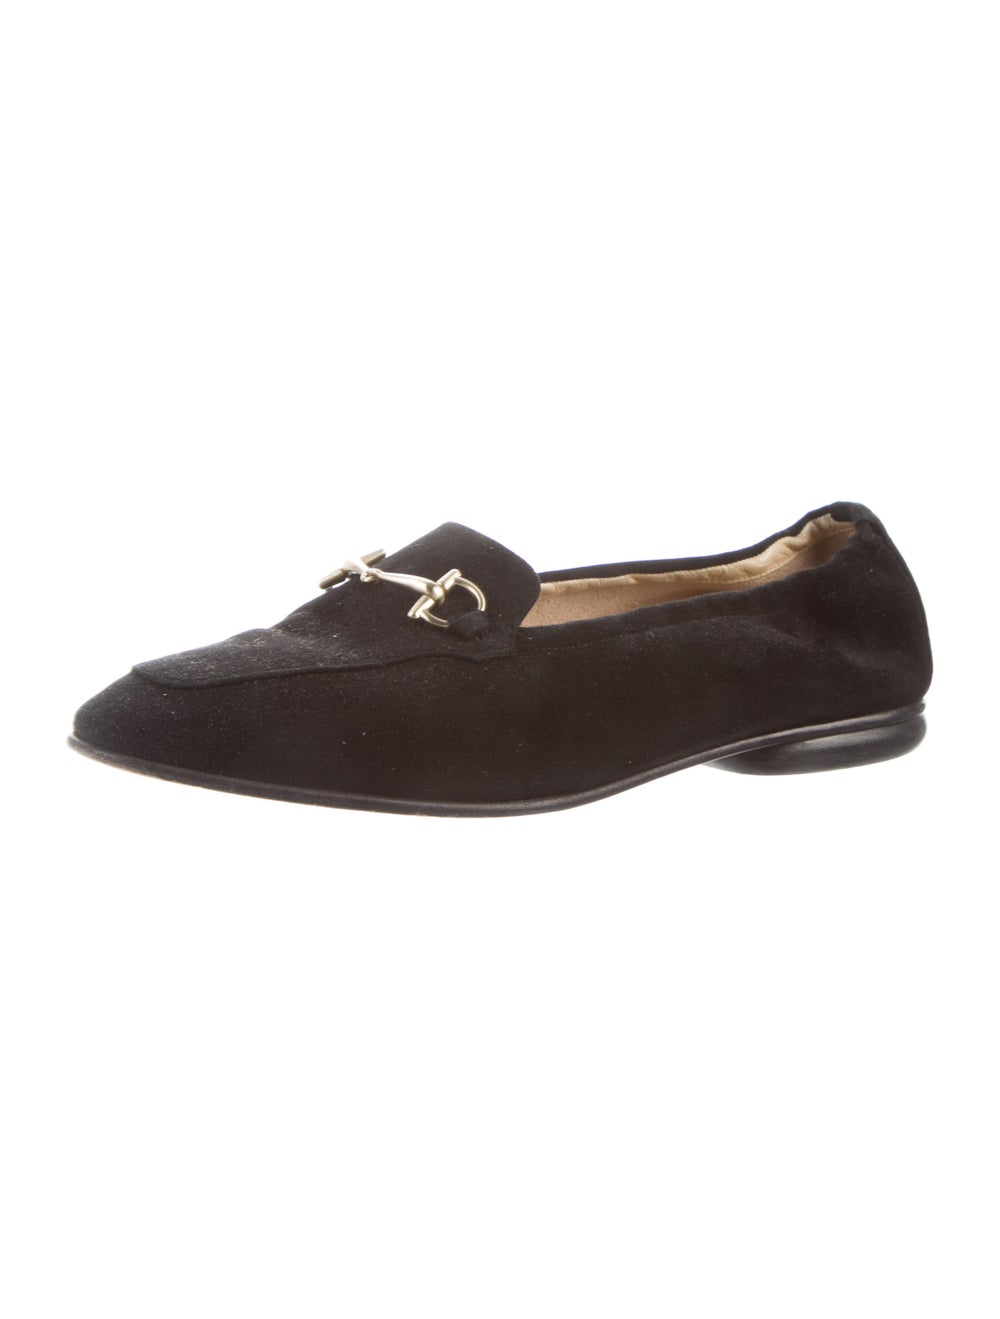 Gucci Horsebit Accent Suede Loafers Black - image 2